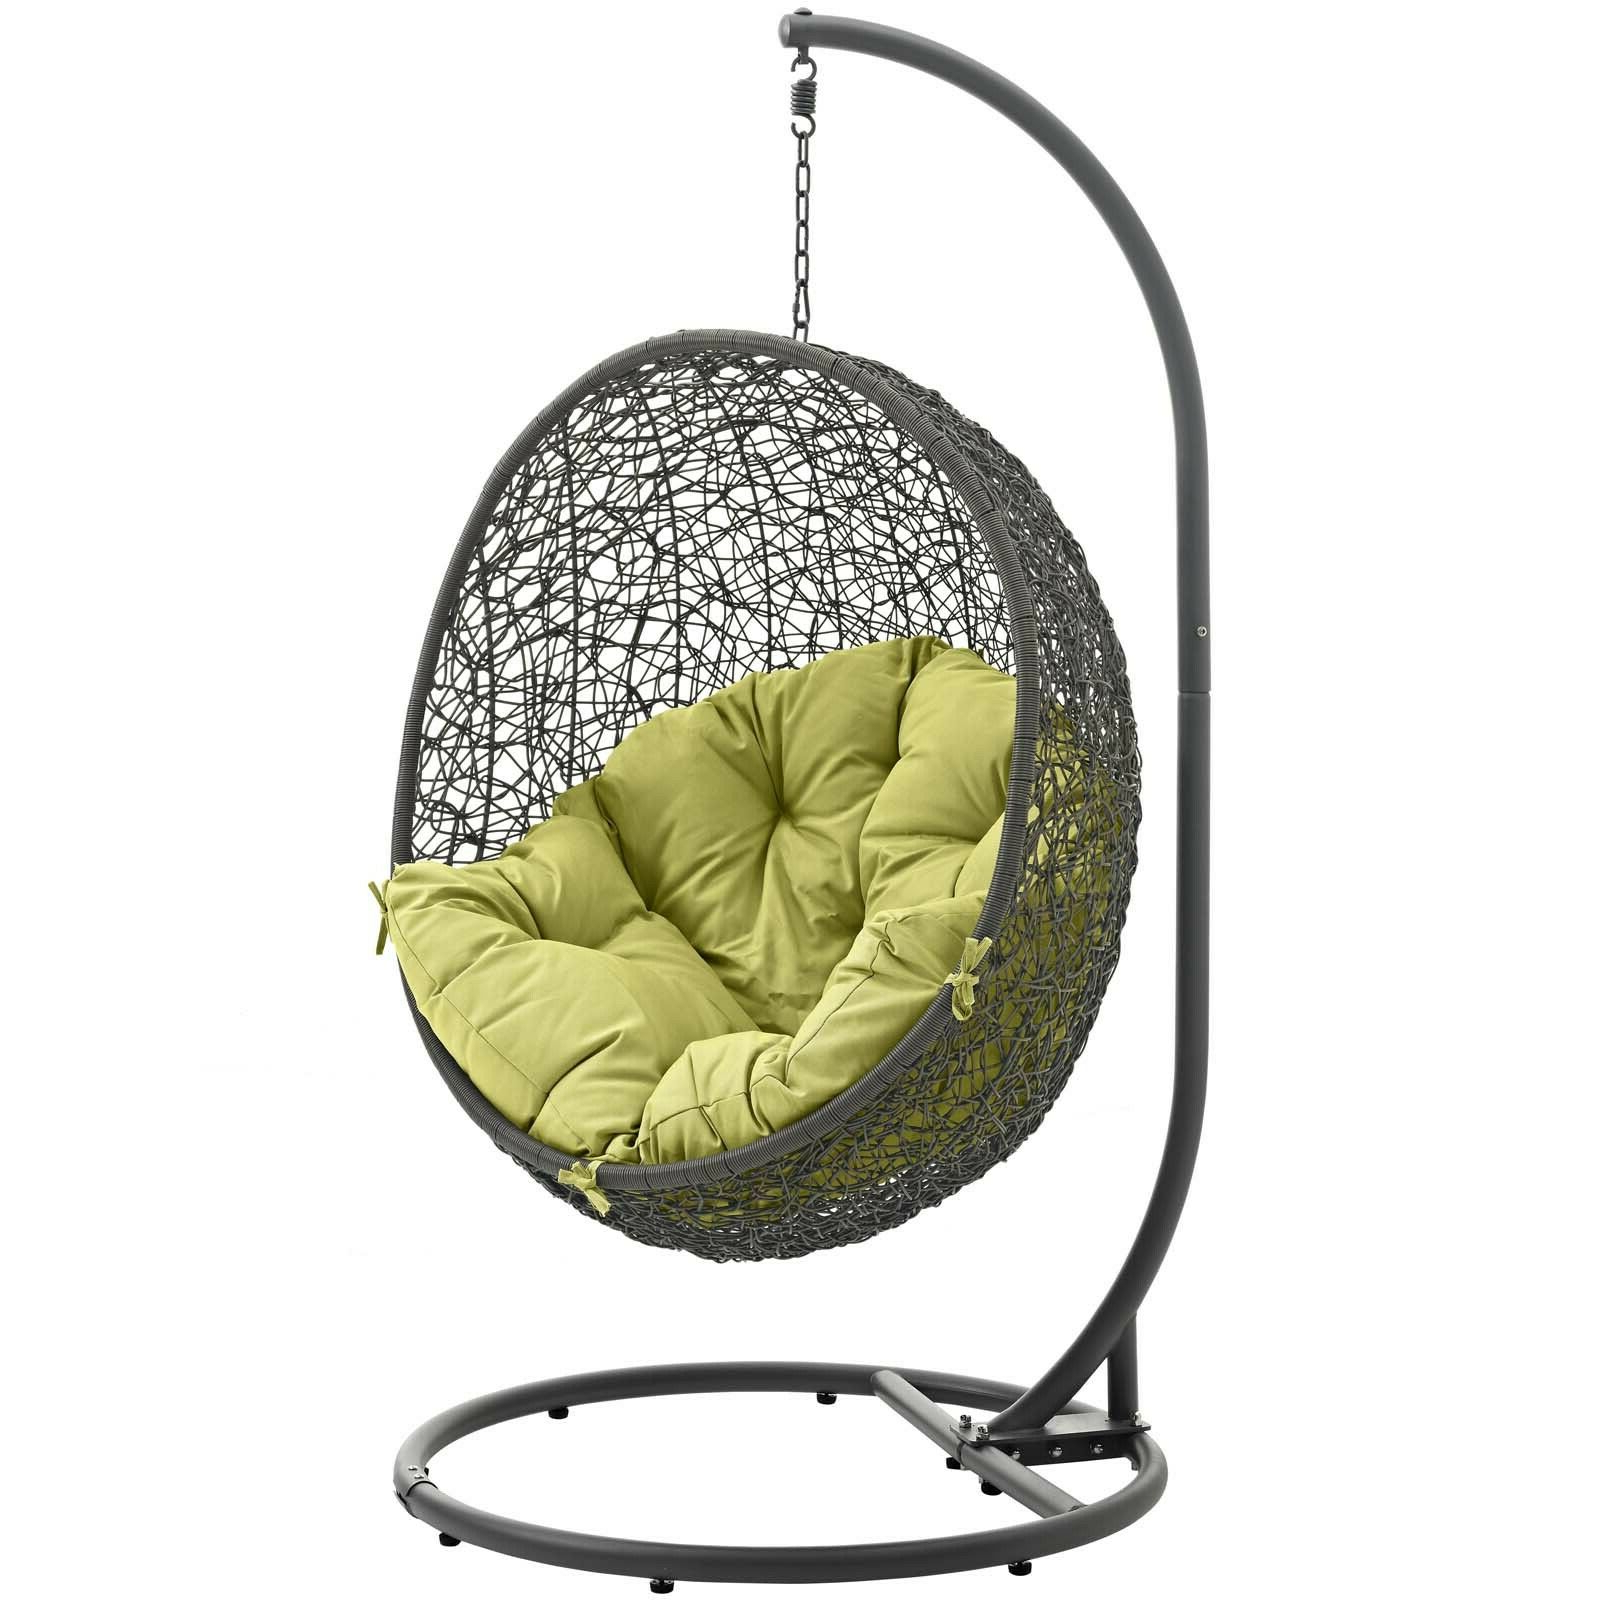 Current Details About Wicker Rattan Outdoor Patio Hanging Swing Porch Chair W/  Stand In Gray Peridot Inside Wicker Glider Outdoor Porch Swings With Stand (Gallery 27 of 30)